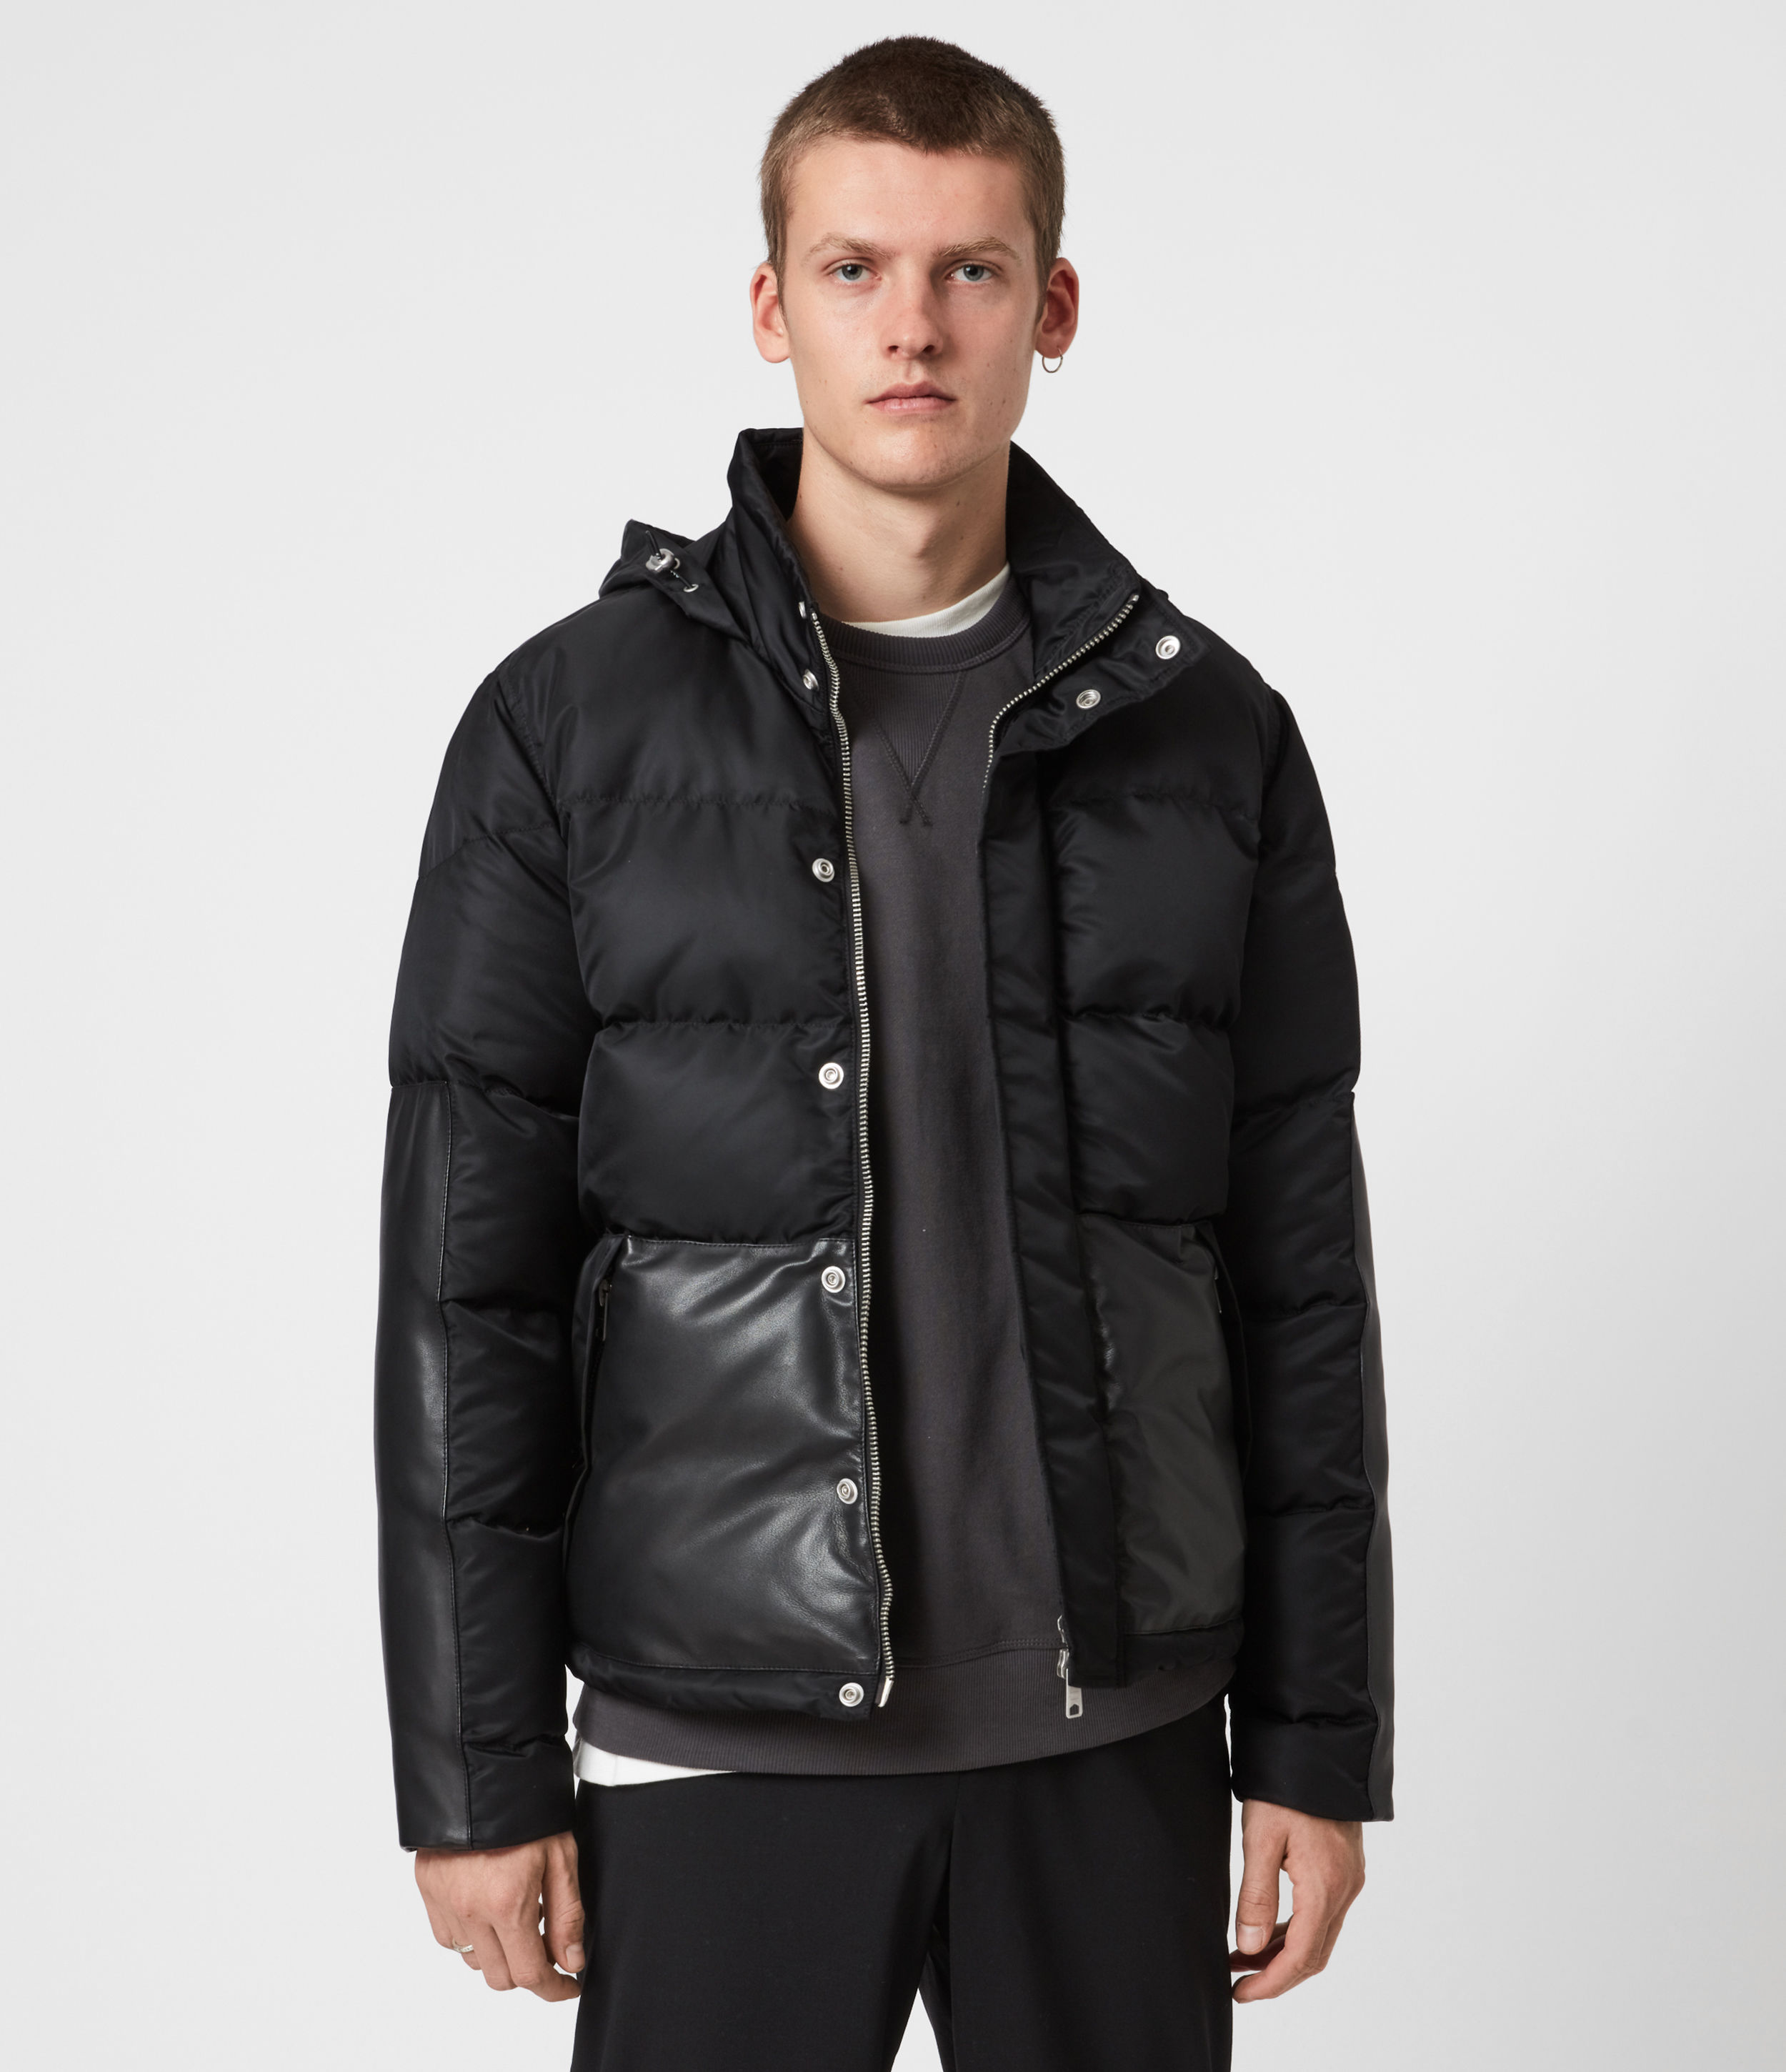 AllSaints Men's Leather Relaxed Fit Varden Puffer Coat, Black, Size: L